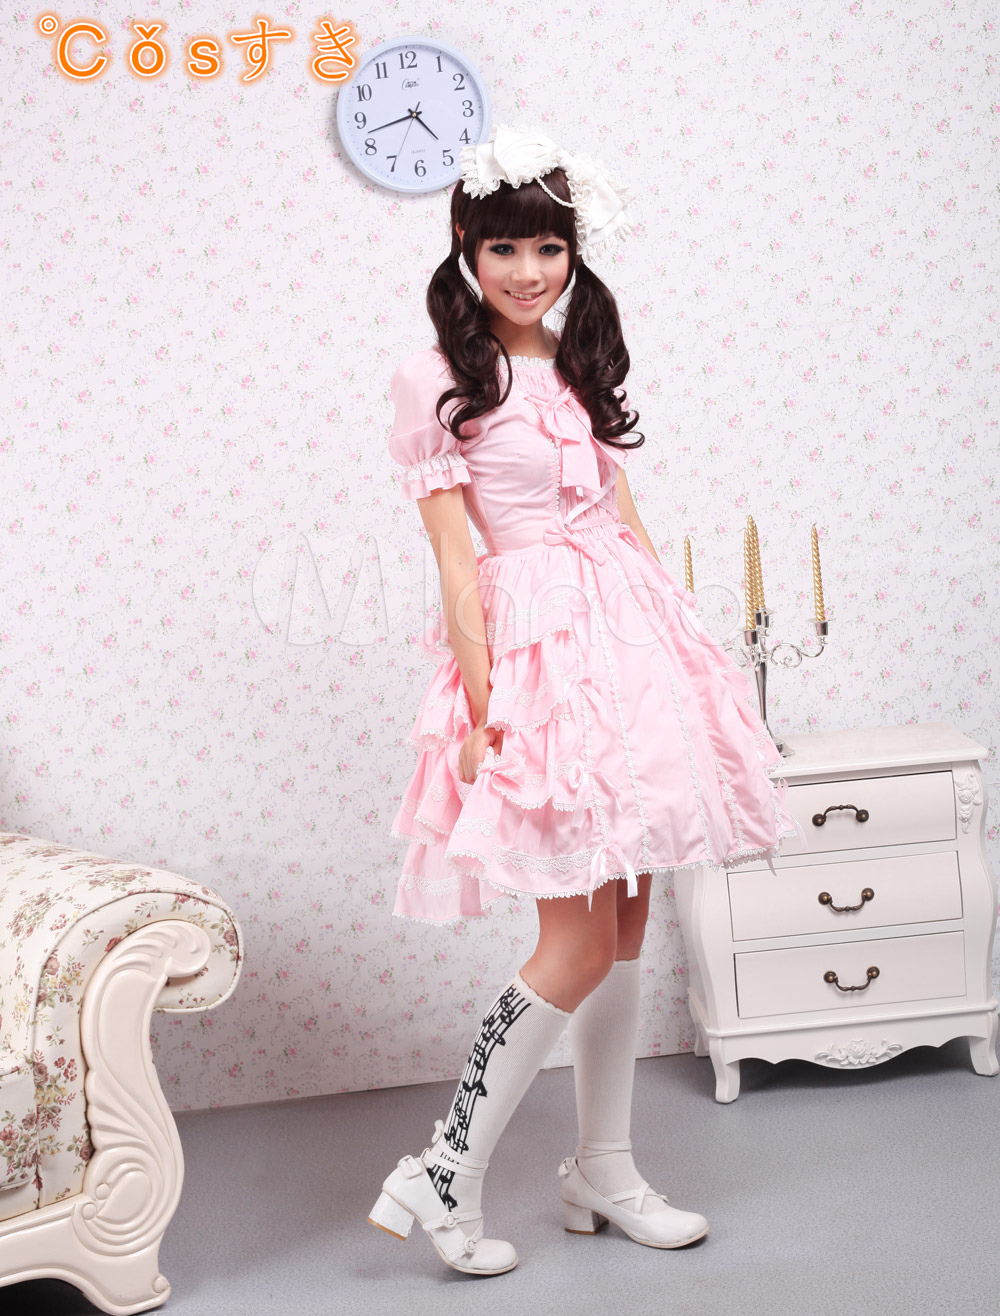 Free shipping! Newest! High - quality! Square Neck Pink Lace Ruffles Lolita Dress